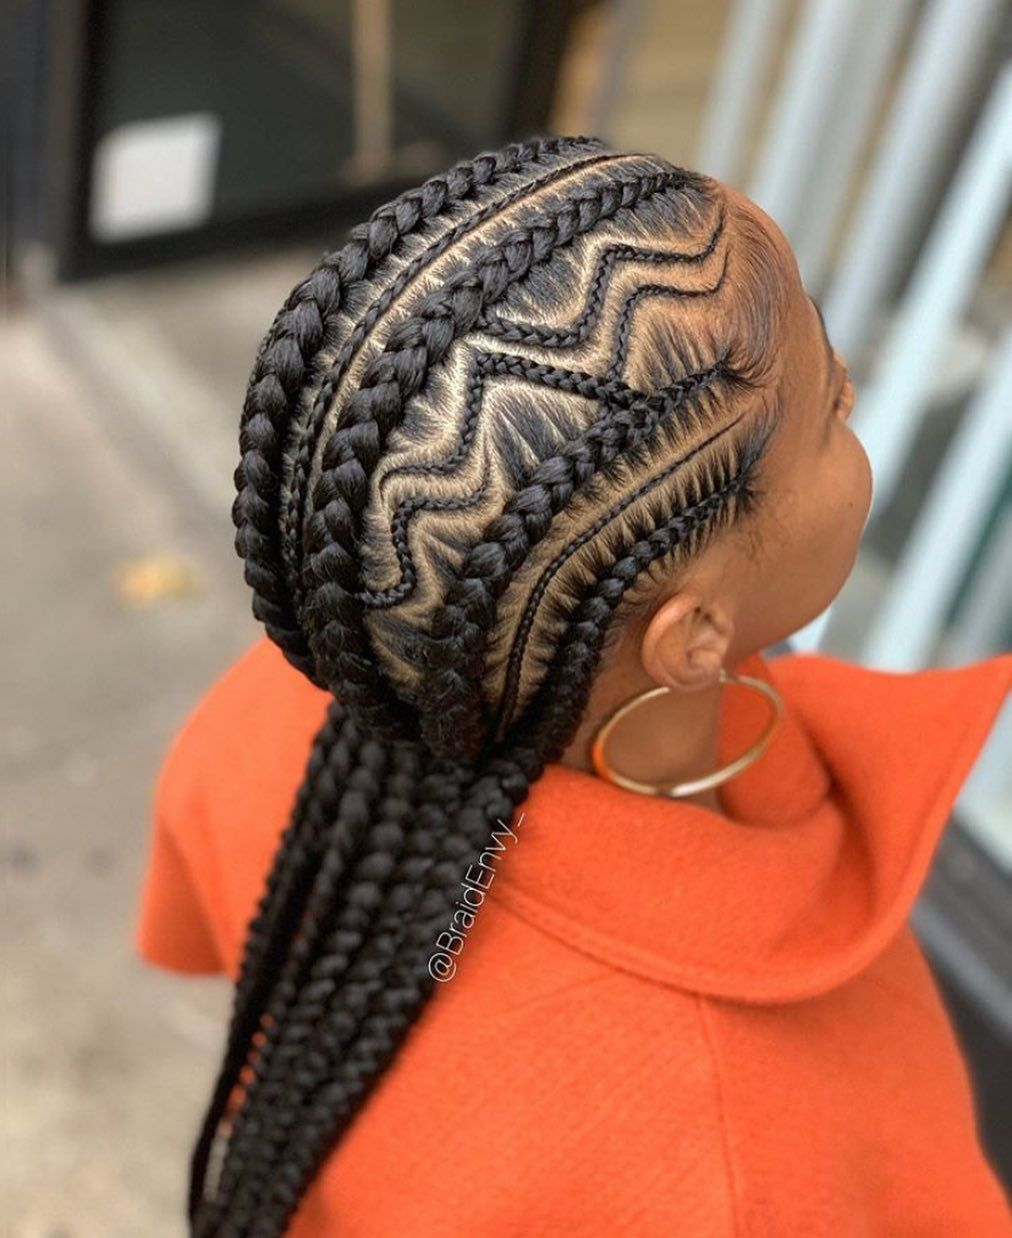 Pin By Shatara B On Hair Goals In 2020 Girls Hairstyles Braids African Hair Braiding Styles Feed In Braids Hairstyles